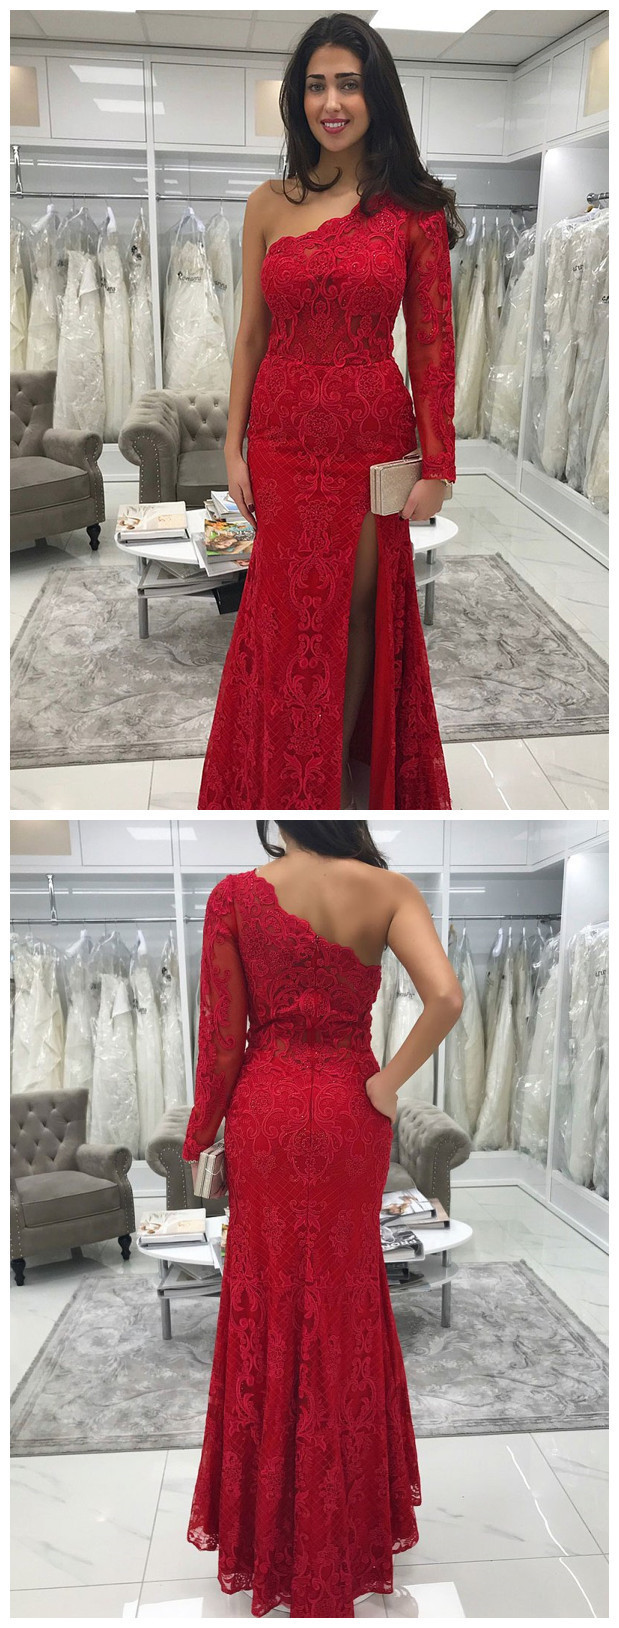 7276a71cafb One Shoulder Long Sleeve Evening Dresses - Data Dynamic AG